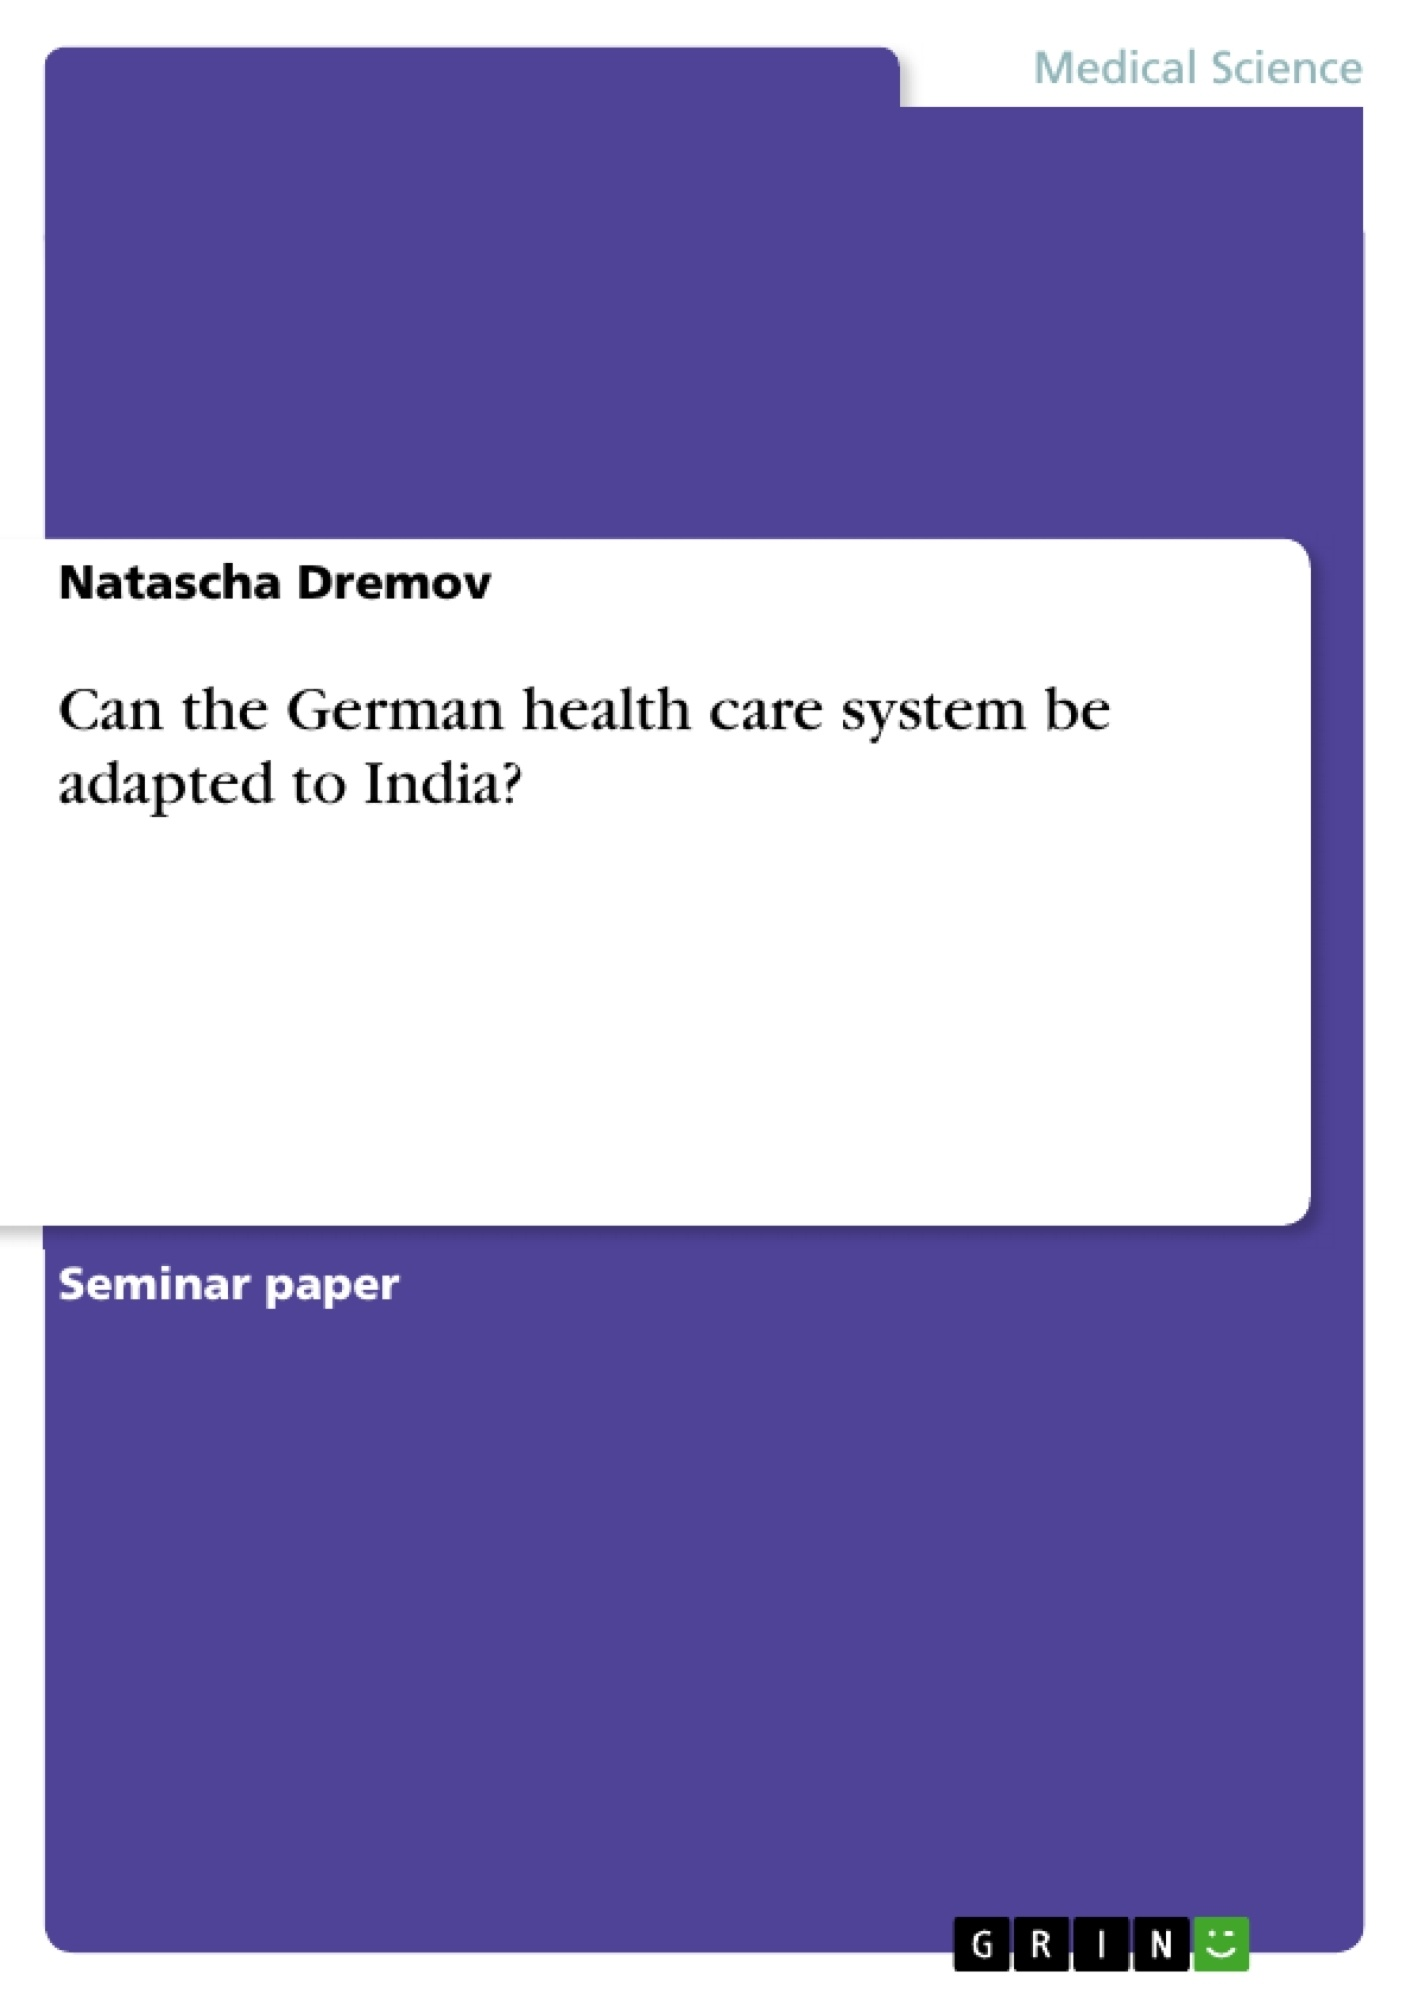 Title: Can the German health care system be adapted to India?